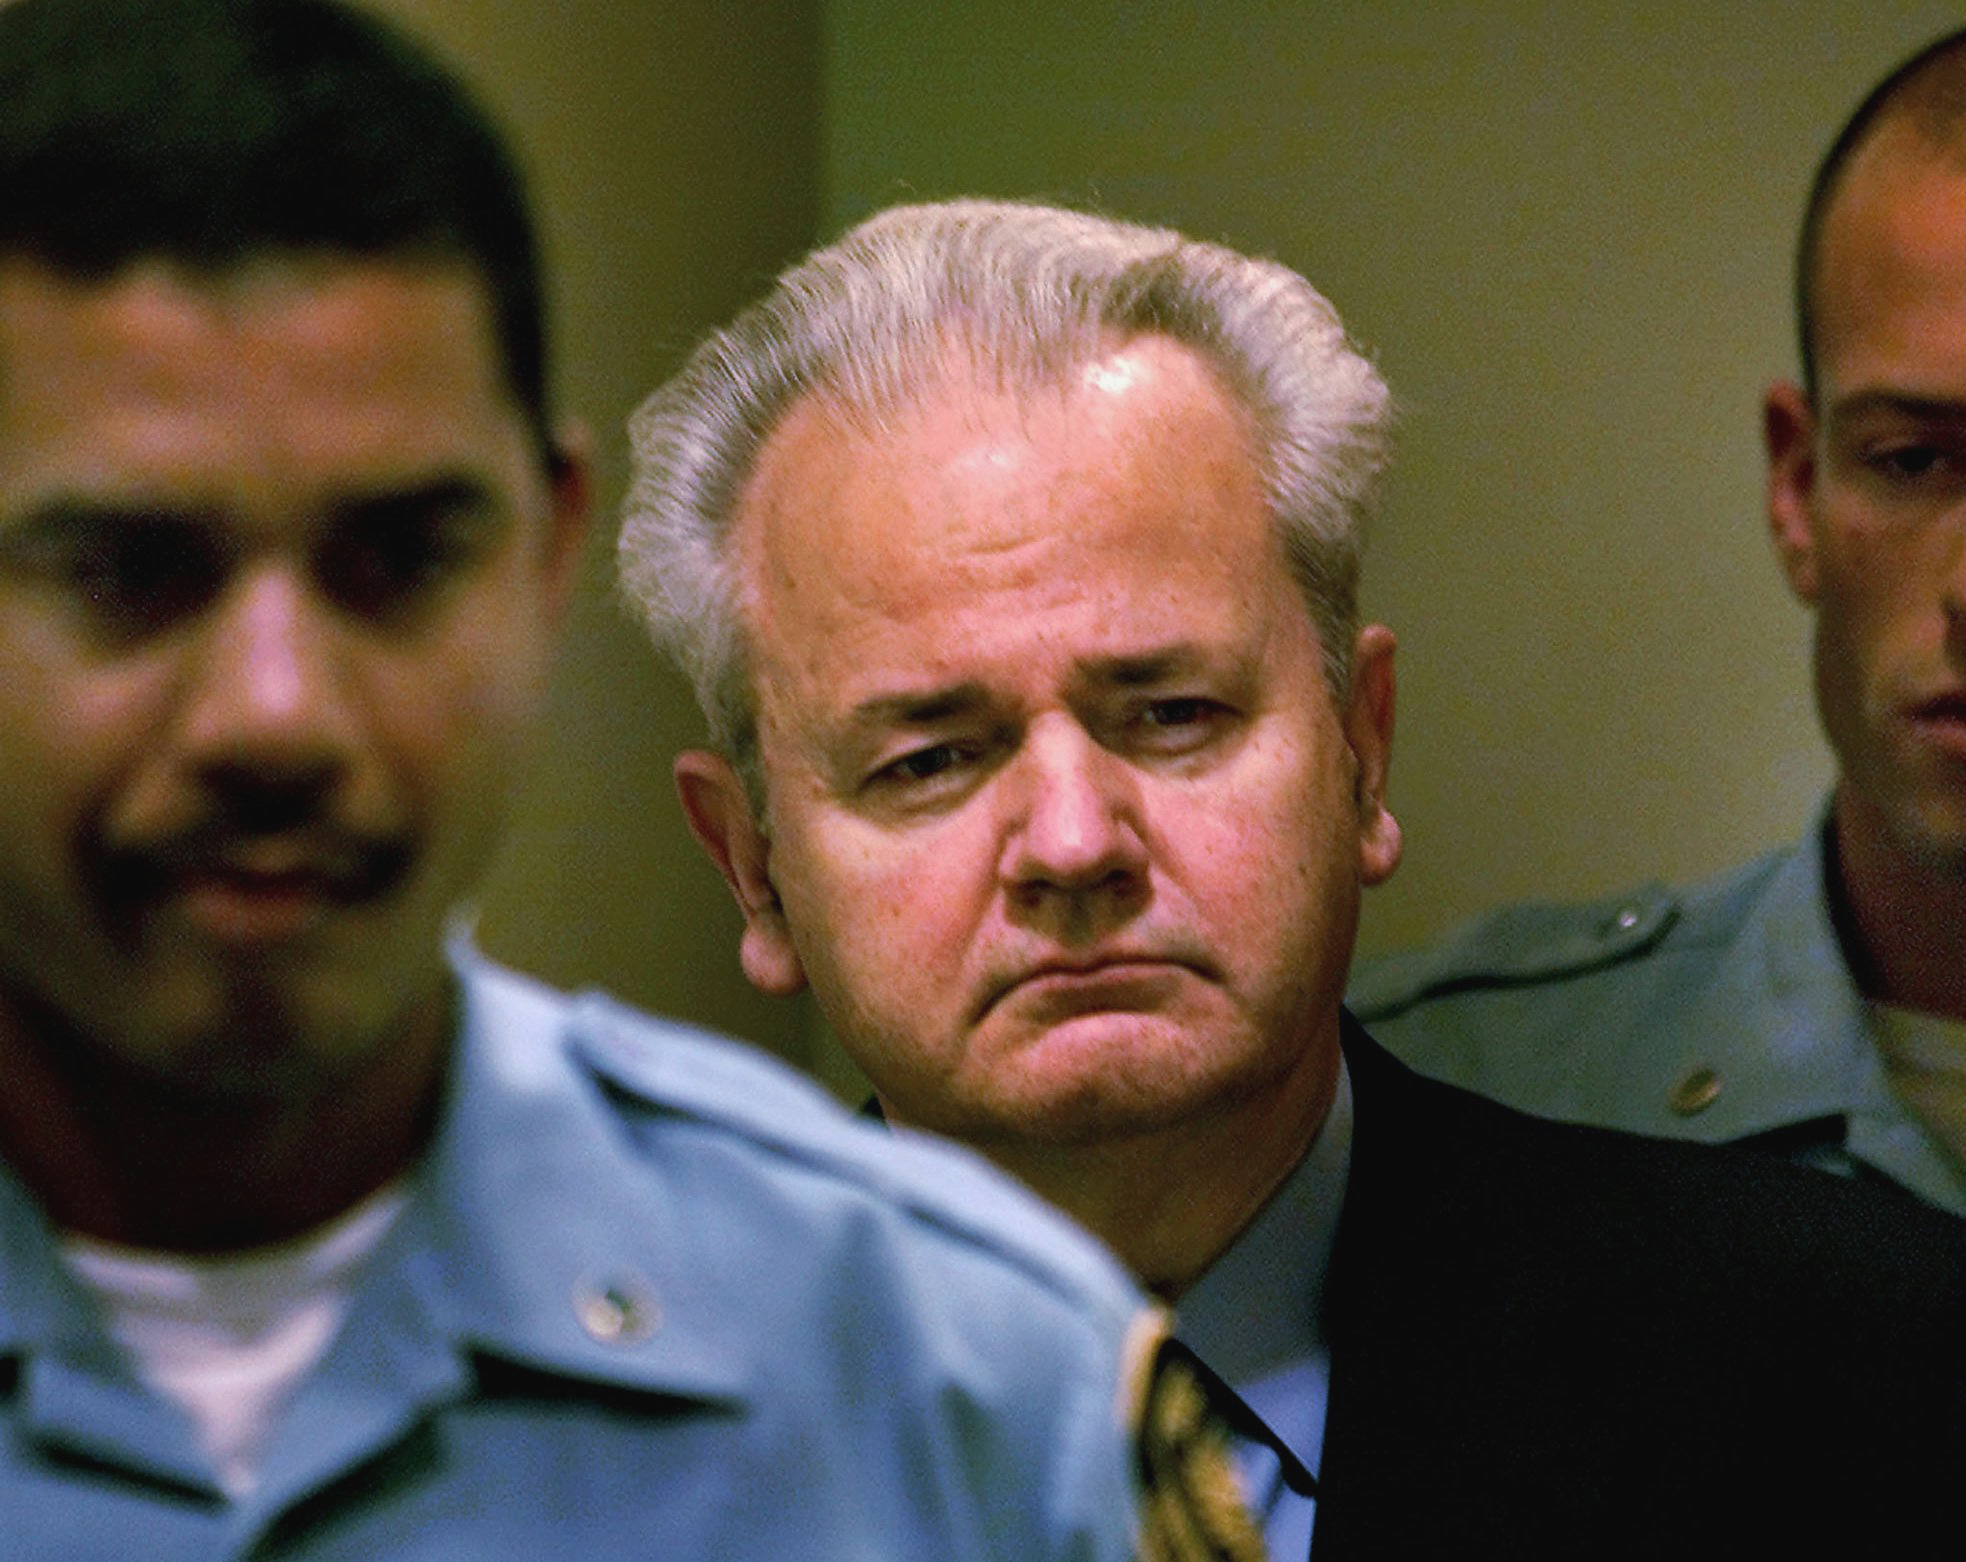 Slobodan Milosevic, center, enters the courtroom to appear before the court of the International Criminal Tribunal for the former Yugoslavia in The Hague, the Netherlands, Dec. 11, 2001.